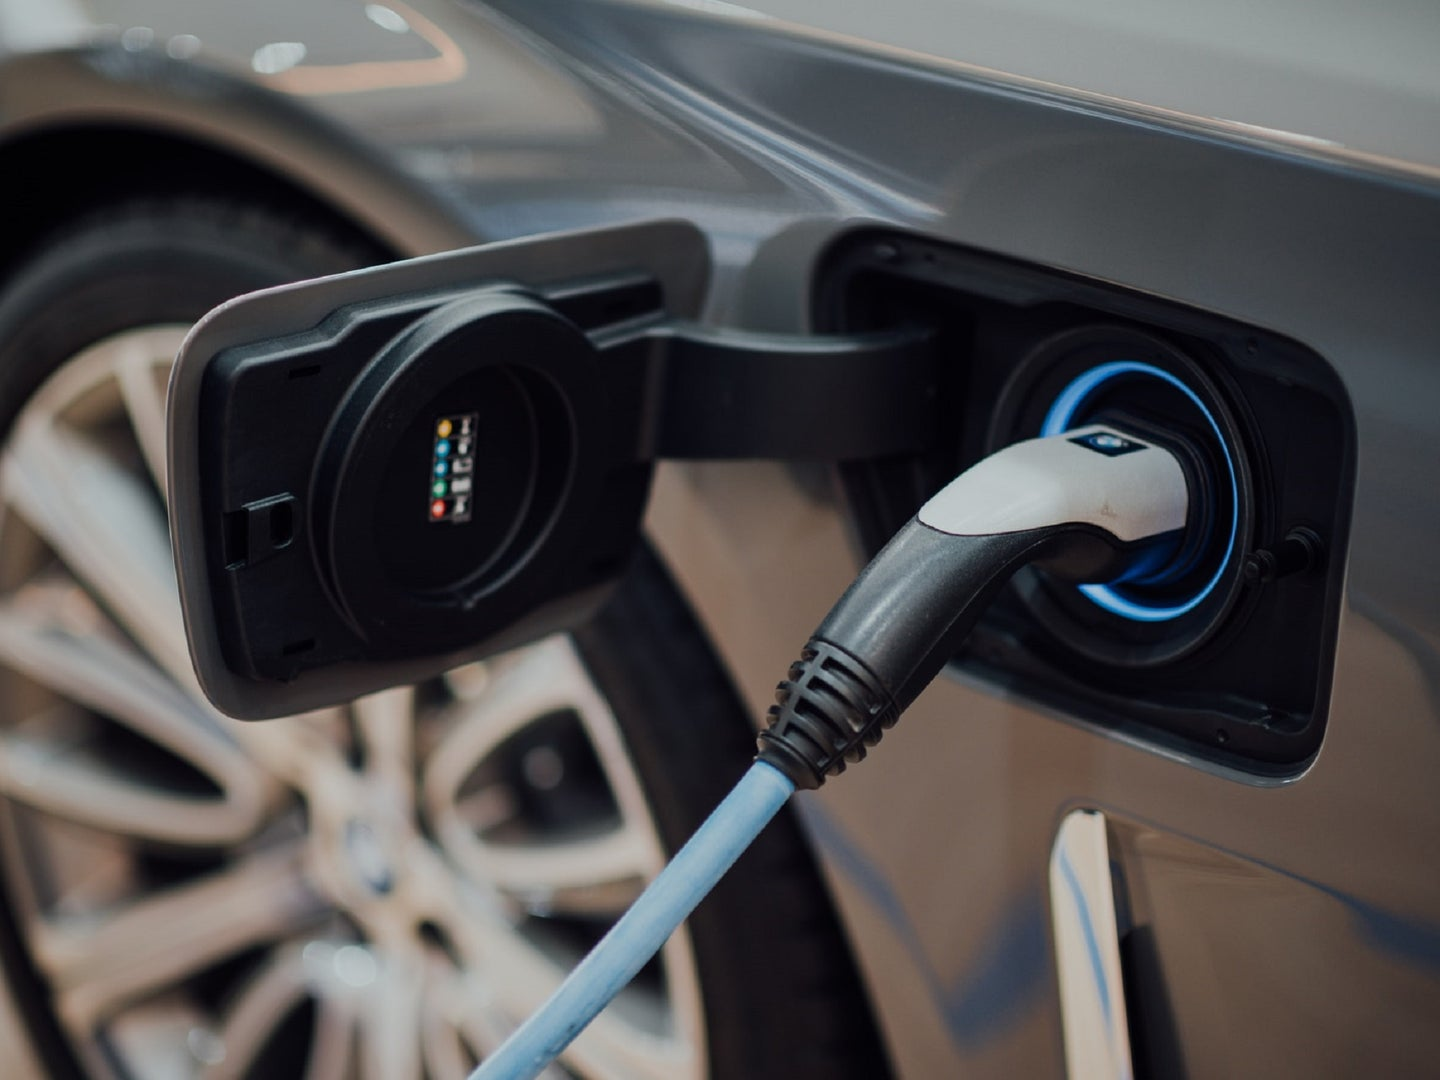 Electric vehicle plugged into a charging station